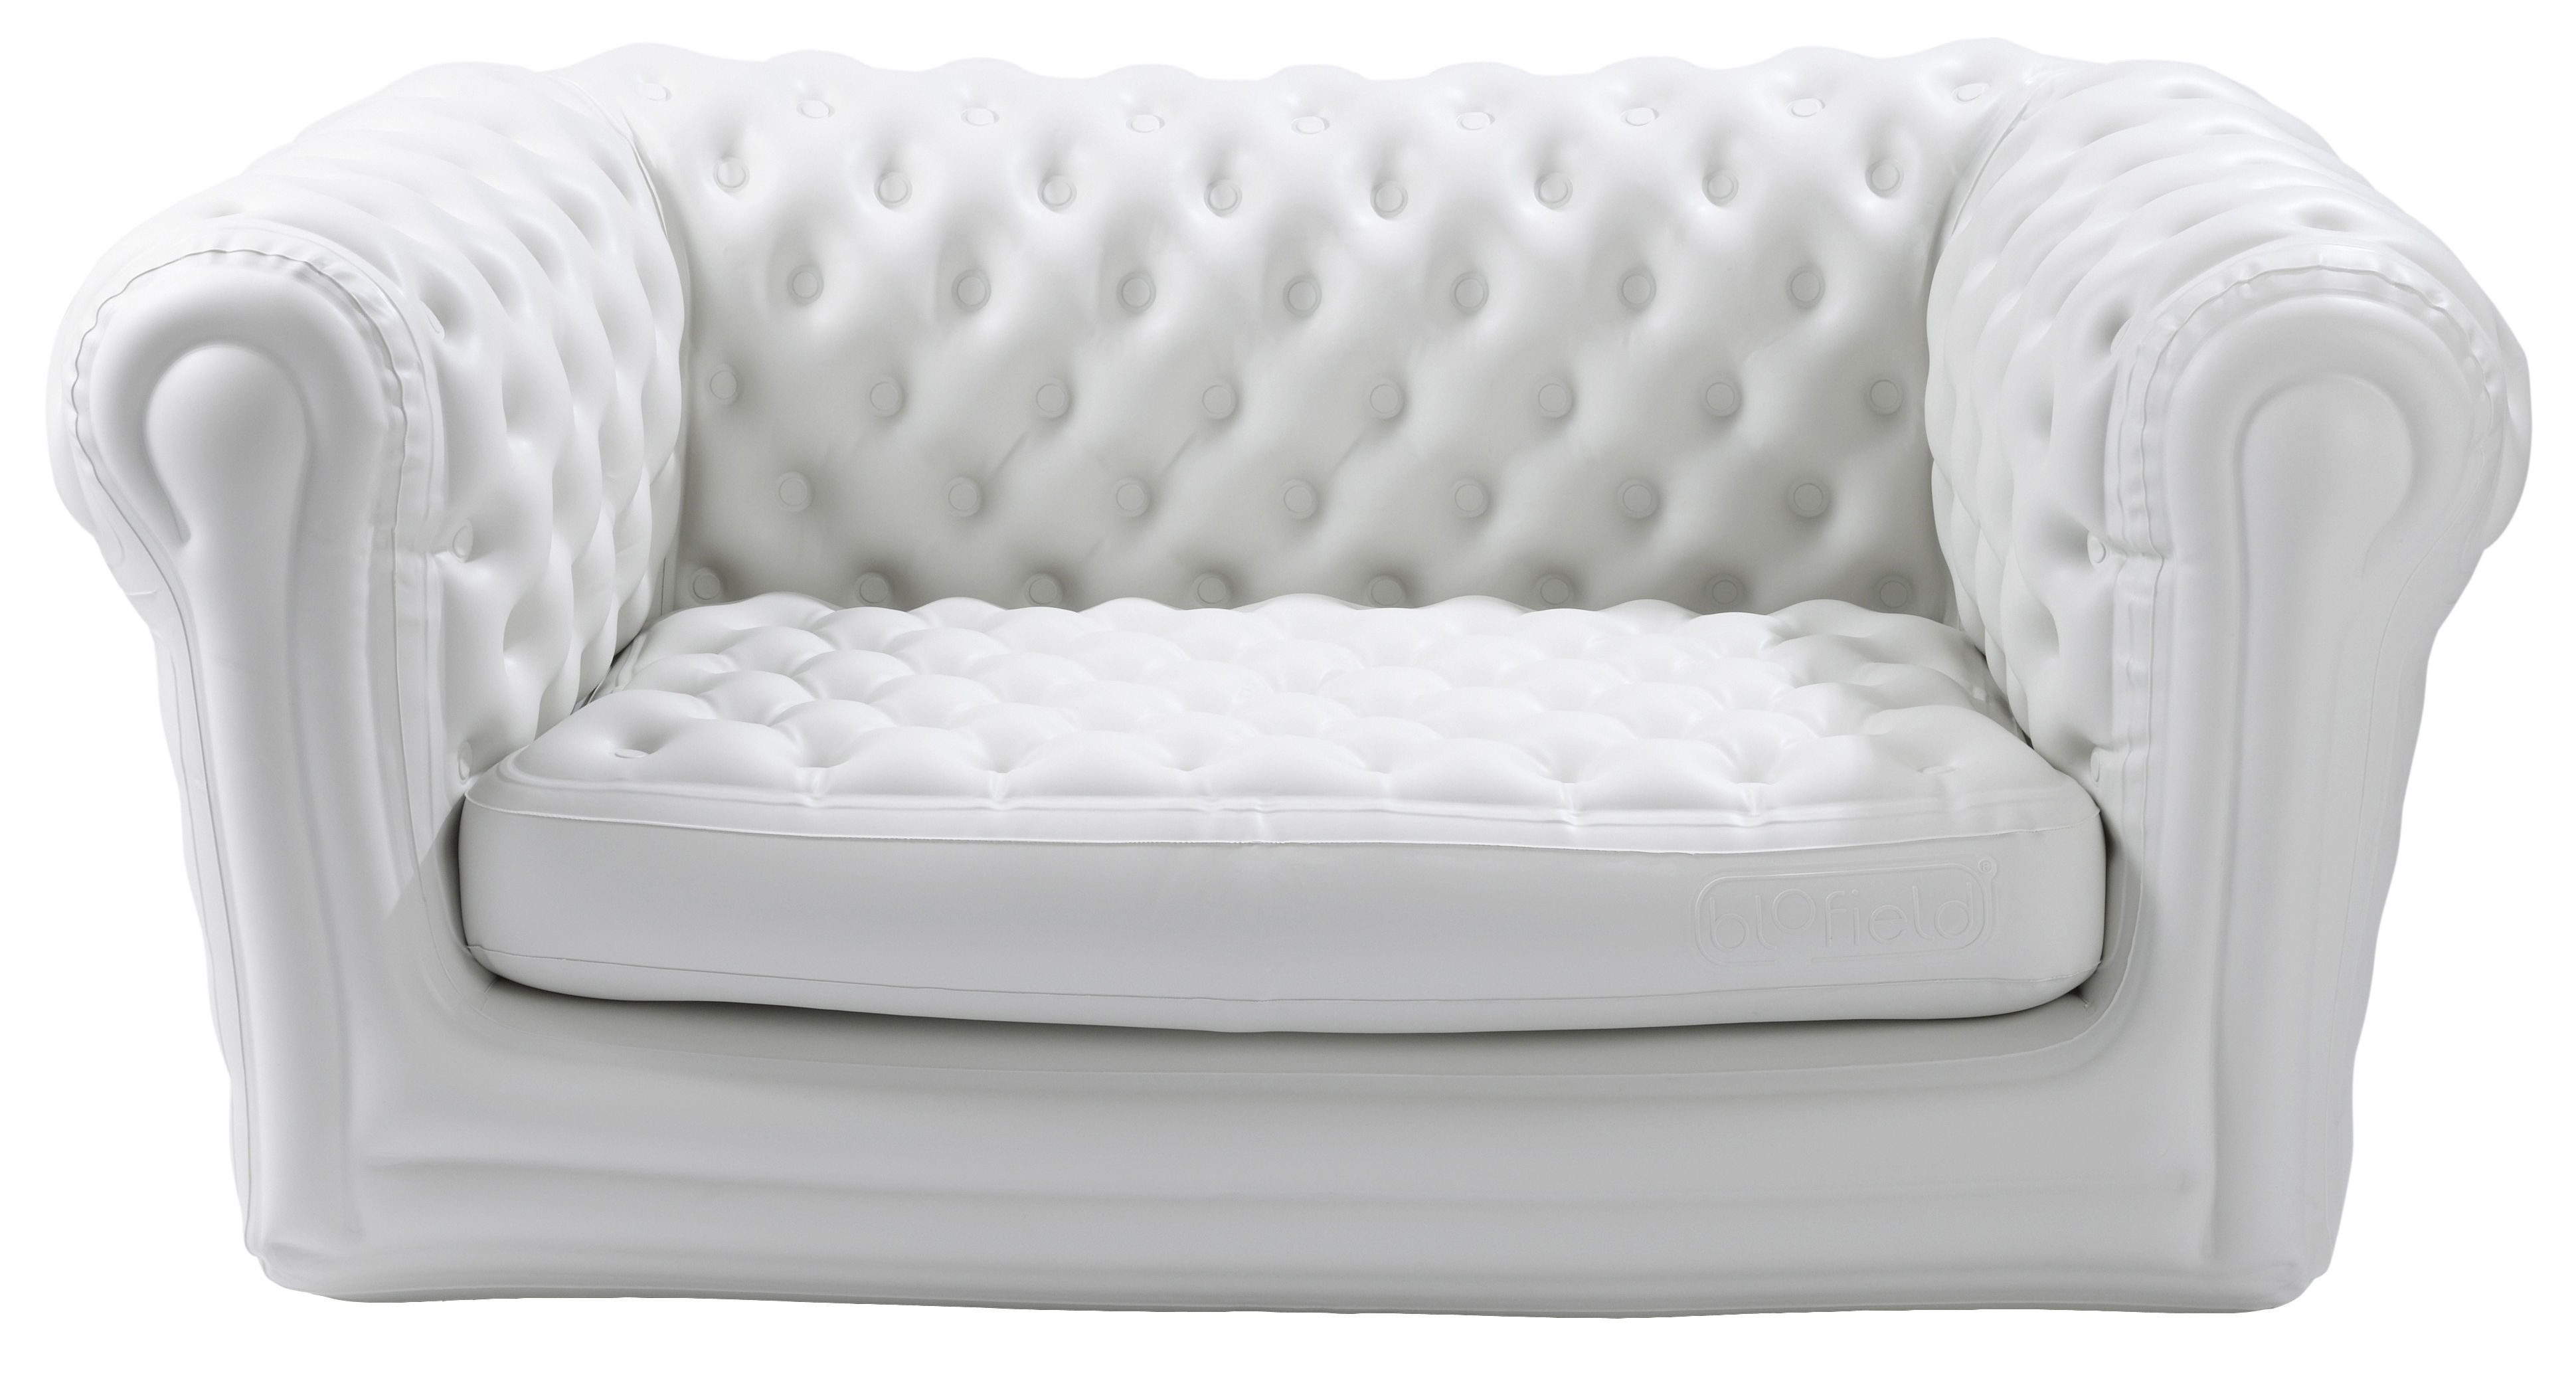 Big Blo 2 Straight Sofa   Inflatable  2 Seats White By Blofield | Made In  Design UK